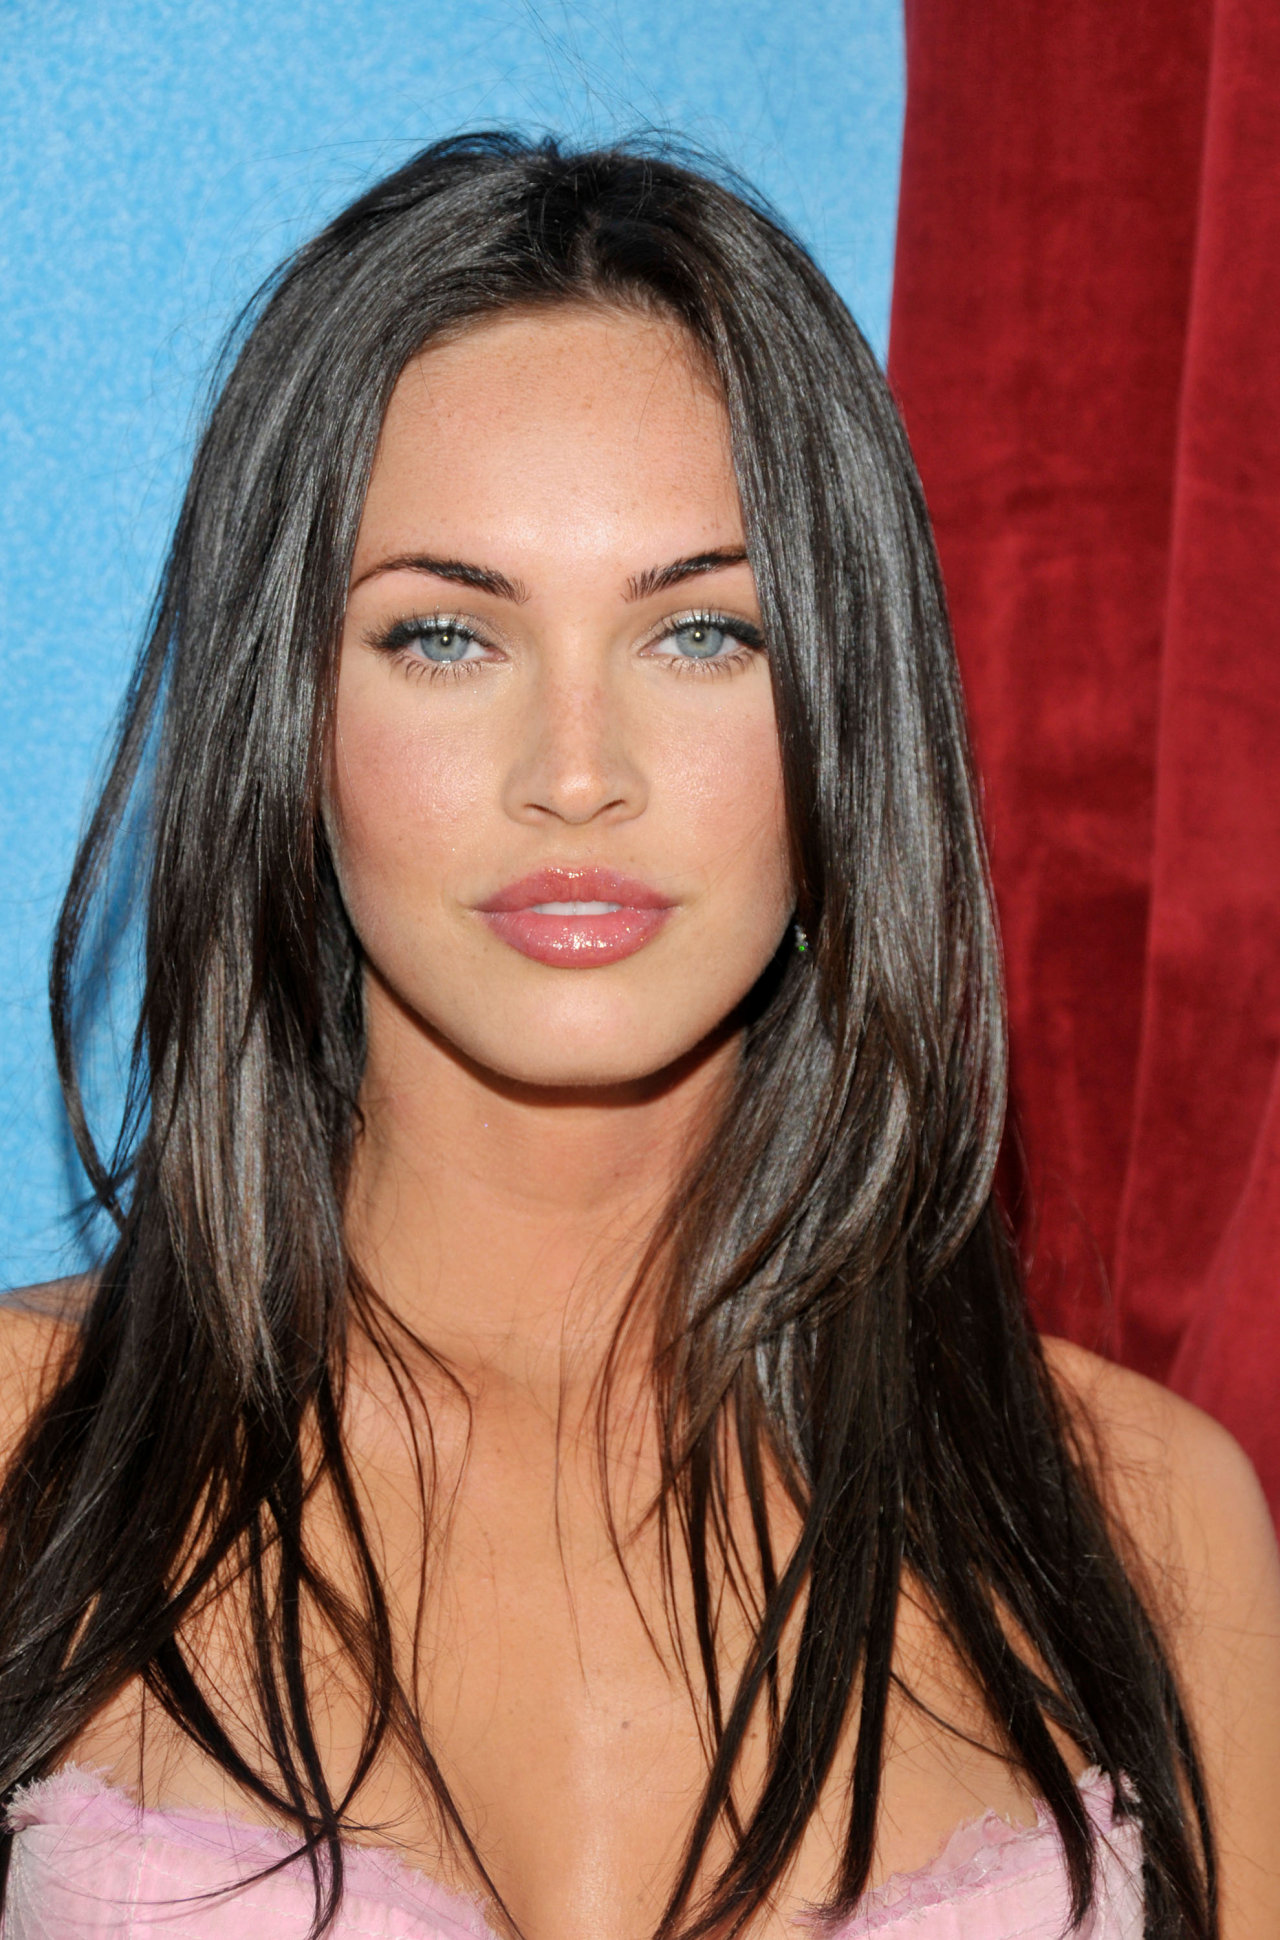 [Image: Megan-Fox-14.jpg]